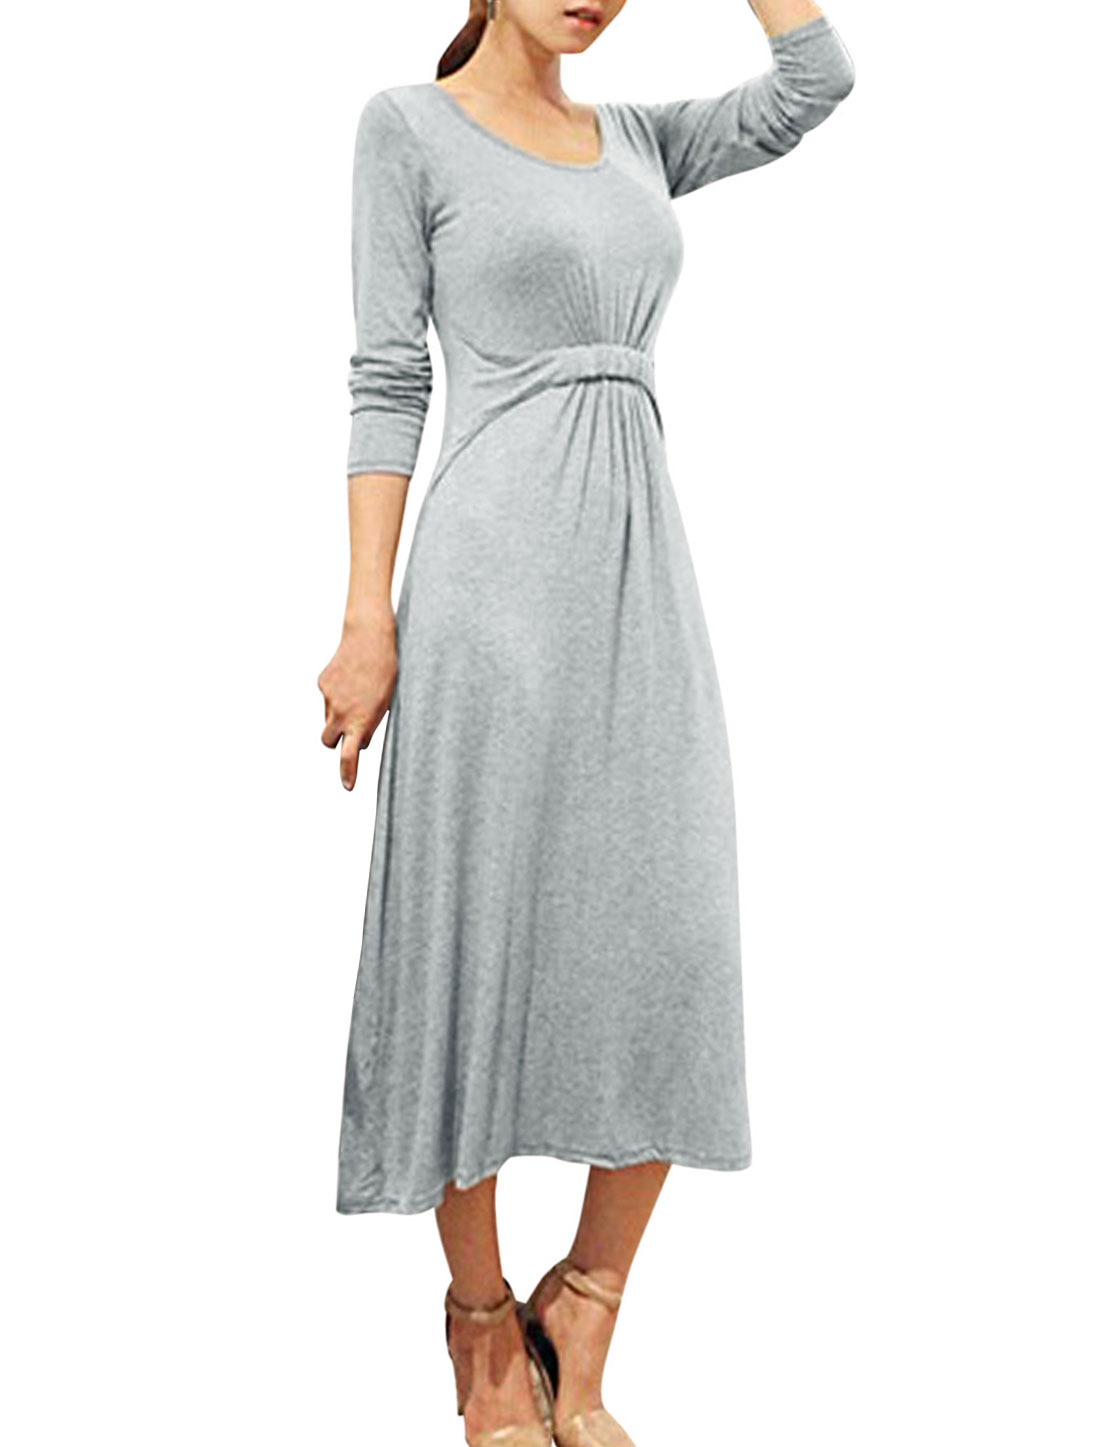 Ladies Gray Elastic Waist Long Sleeves Round Neck Unlined Dress XS